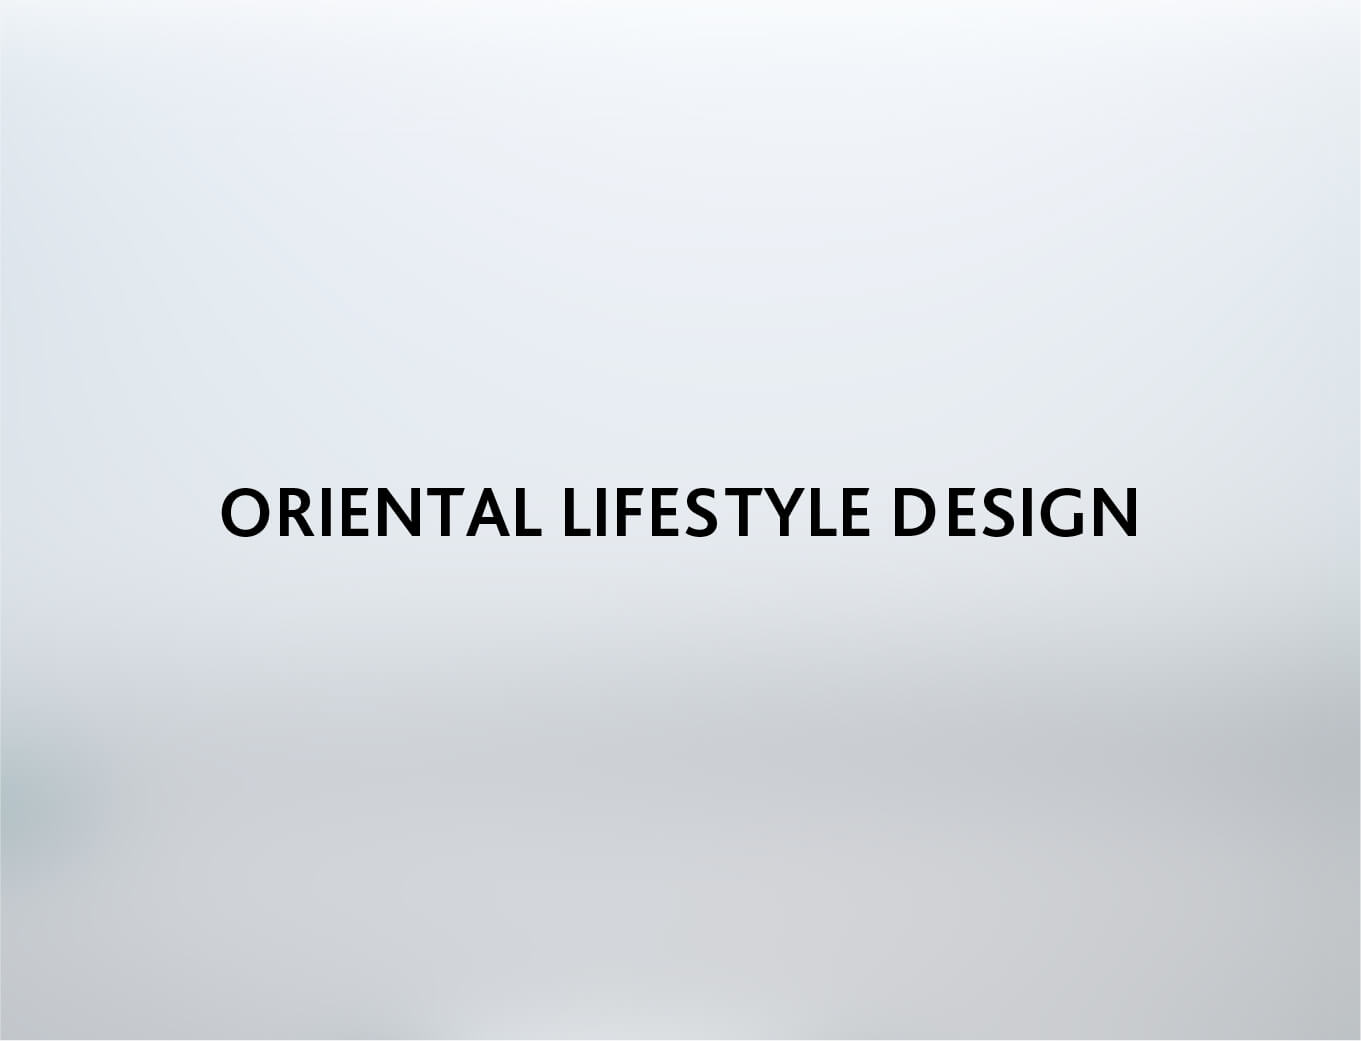 Zens Tableware Brand for oriented lifestyle